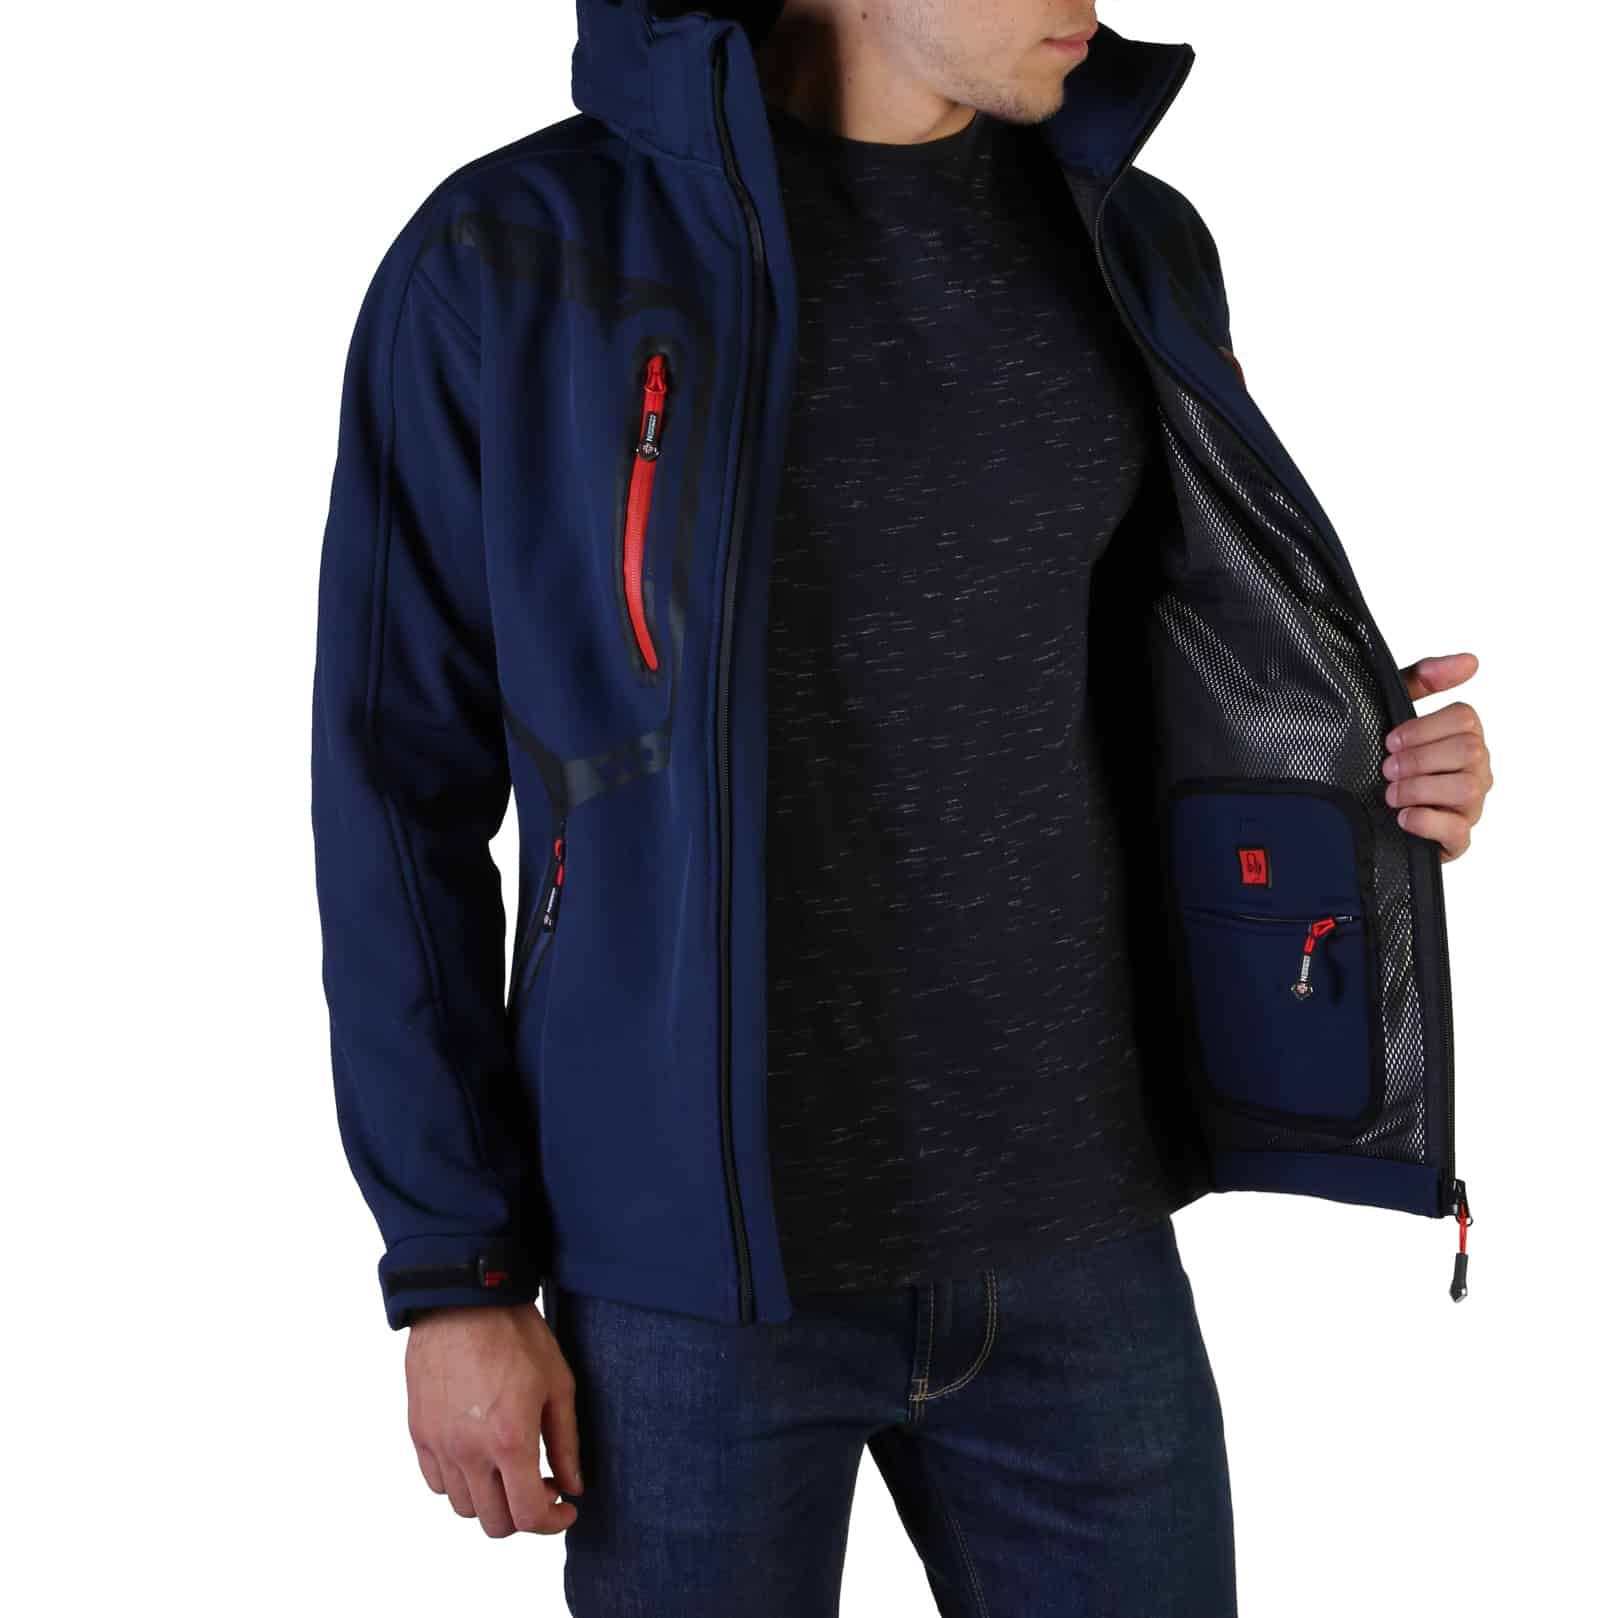 Vestes Geographical Norway – Tinin_man